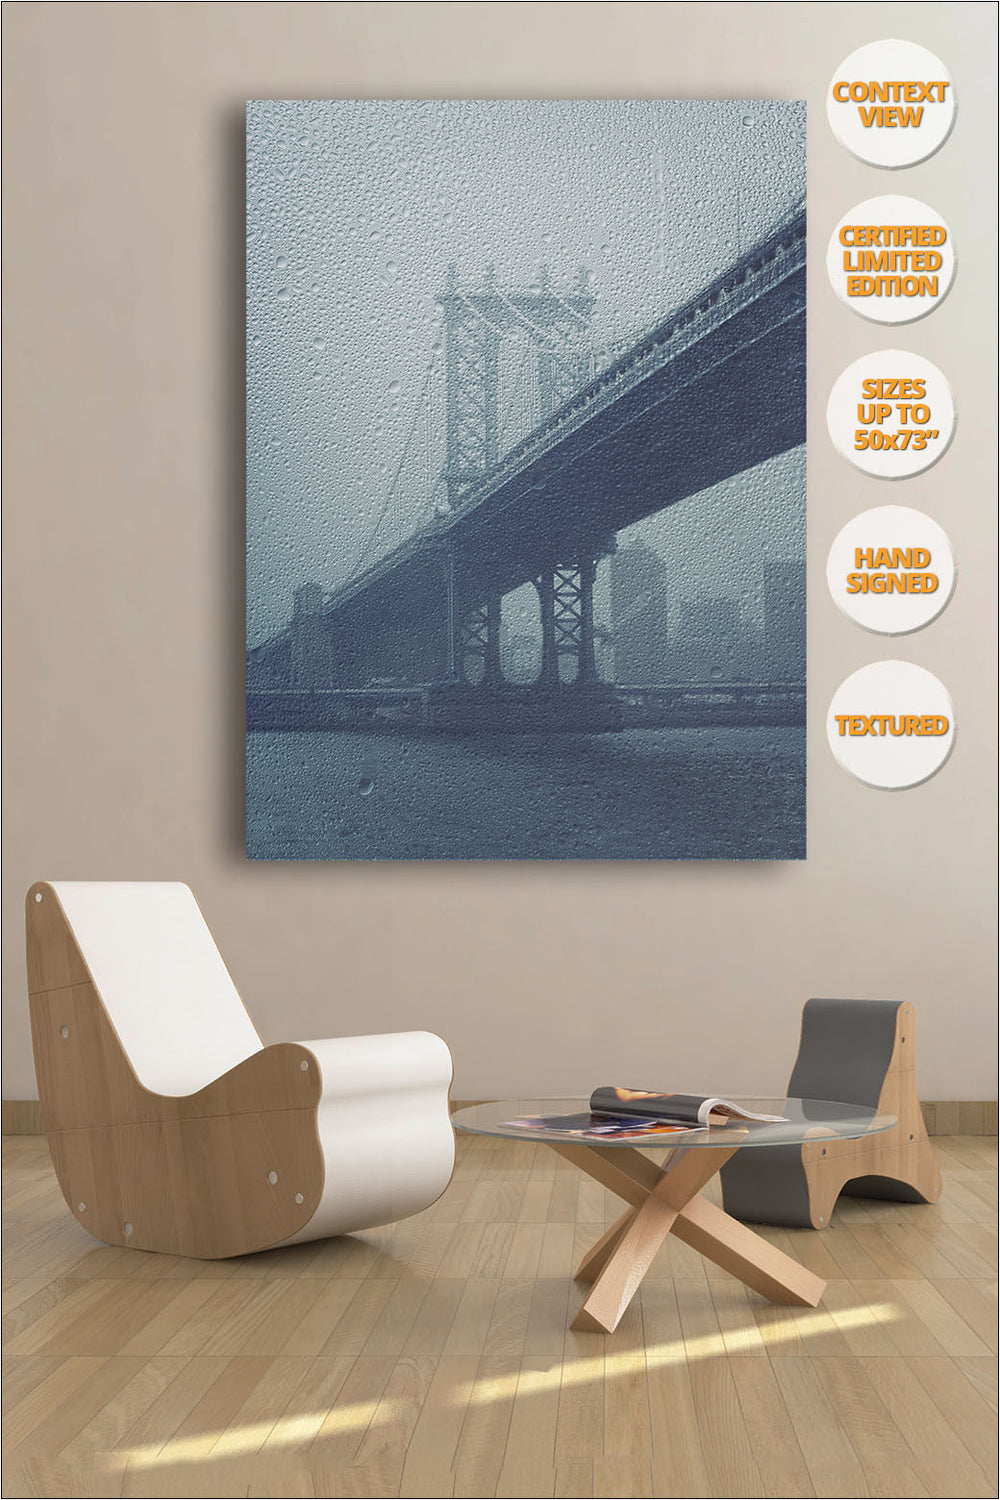 Manhattan Bridge Pillar, New York. | Print hanged in waiting room.